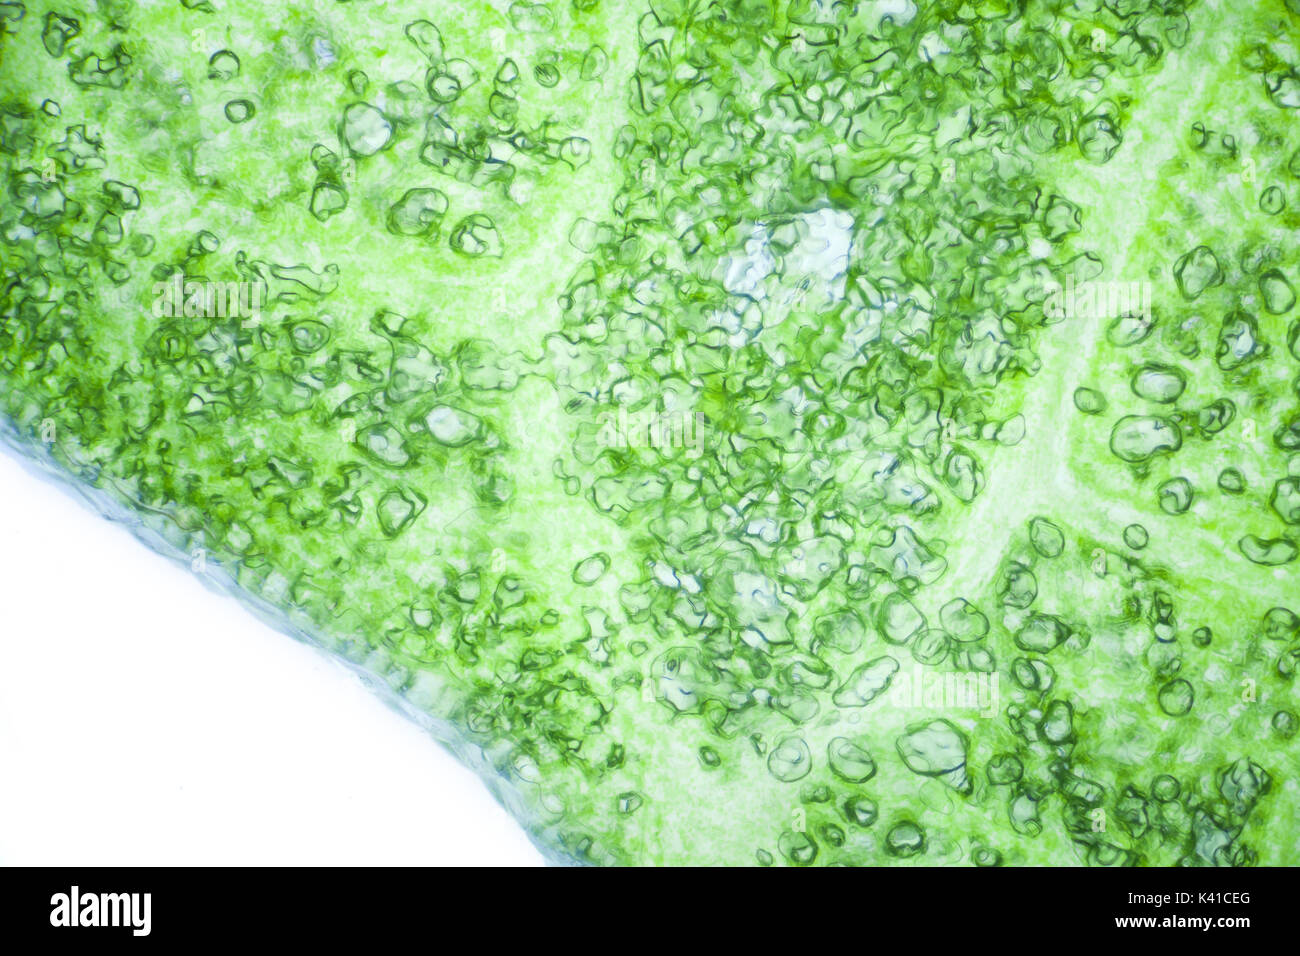 Lettuce cells under microscope, magnification x 100 Stock Photo